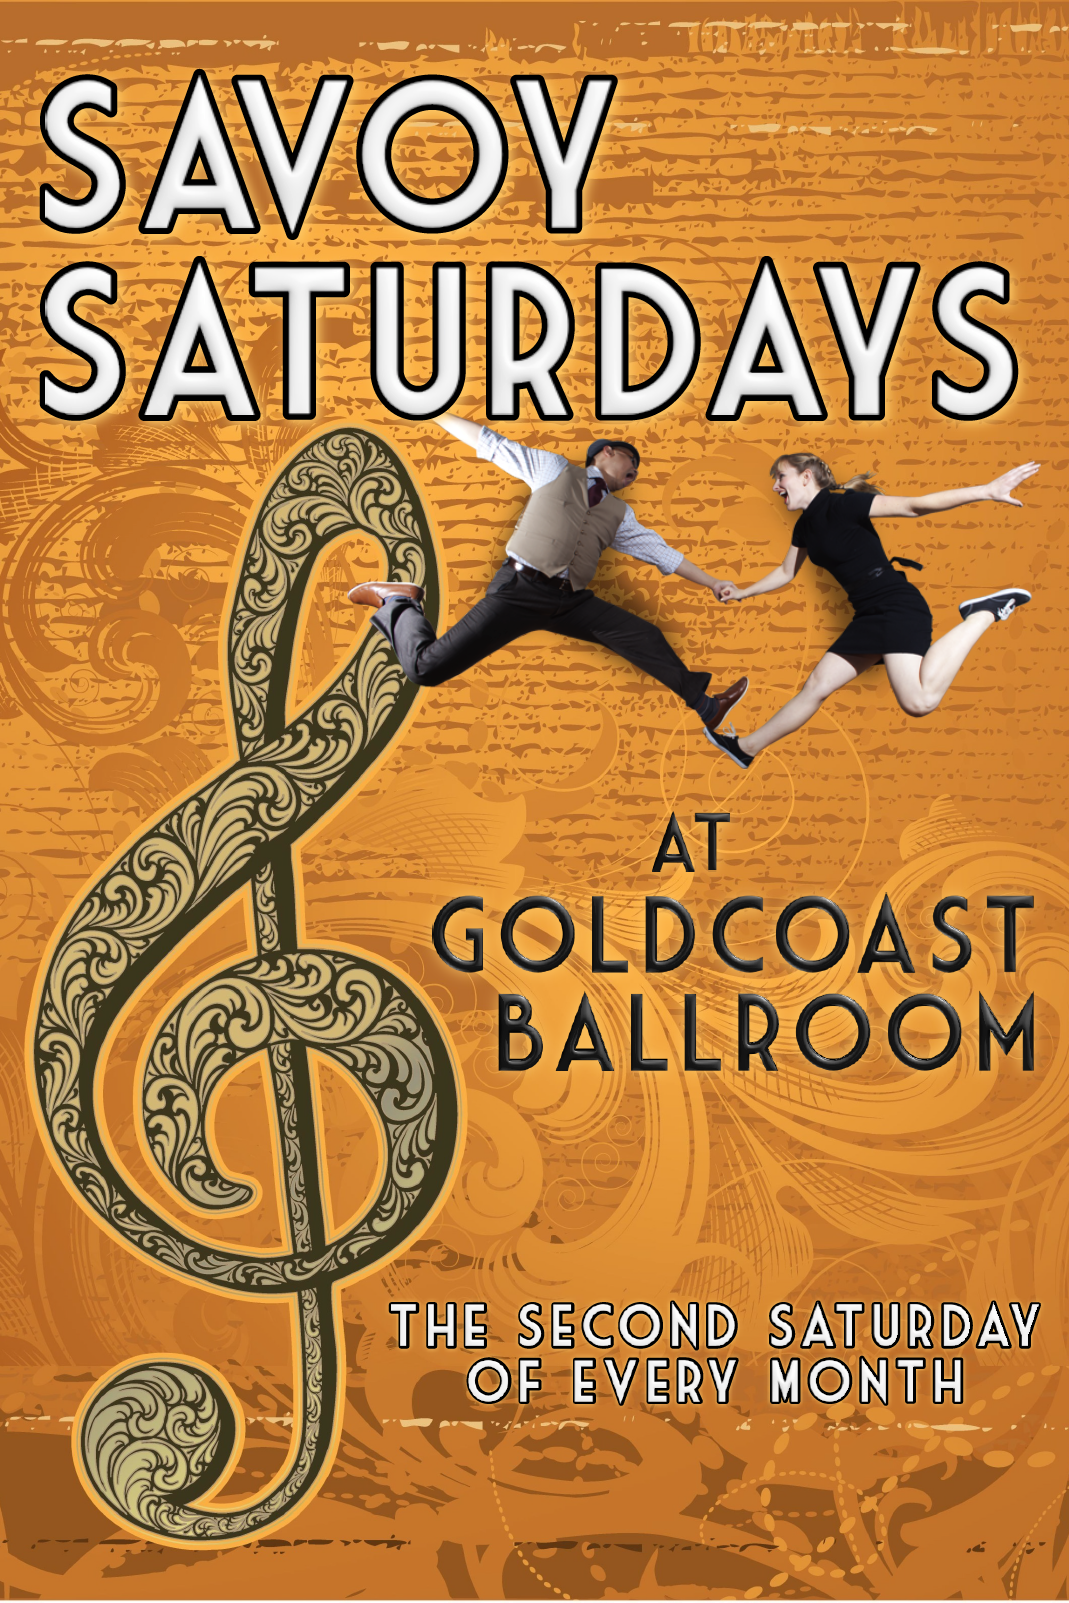 Savoy Saturdays - 2nd Saturday of Every Month at Goldcoast Ballroom